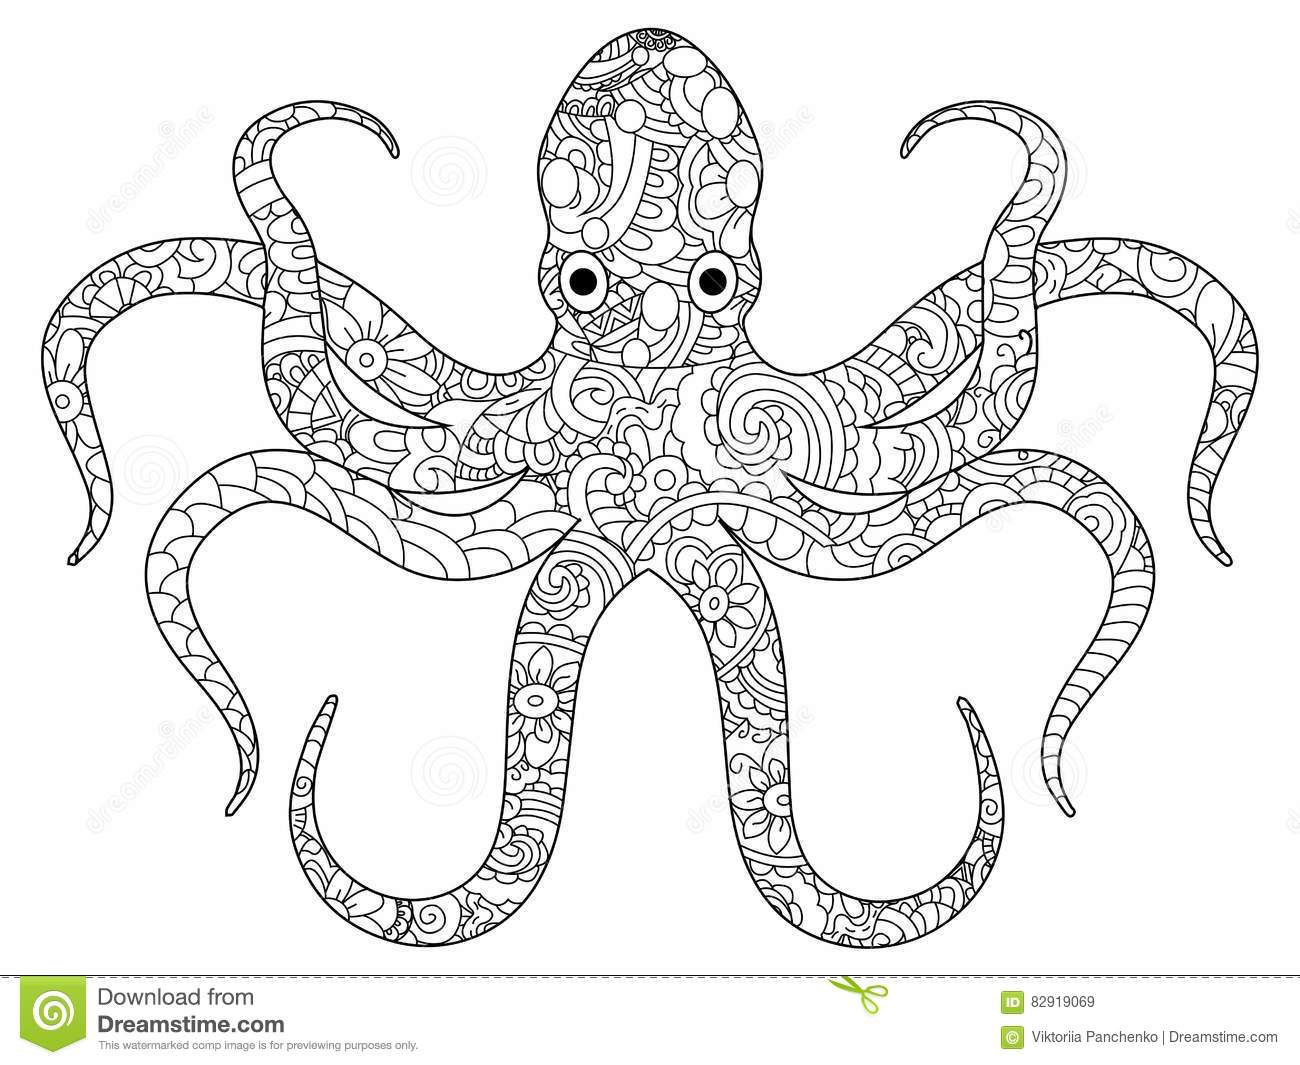 Anti stress colouring book asda - Filename Octopus Coloring Book Adults Vector Sea Animal Illustration Anti Stress Adult Zentangle Style Black White 82919069 Jpg